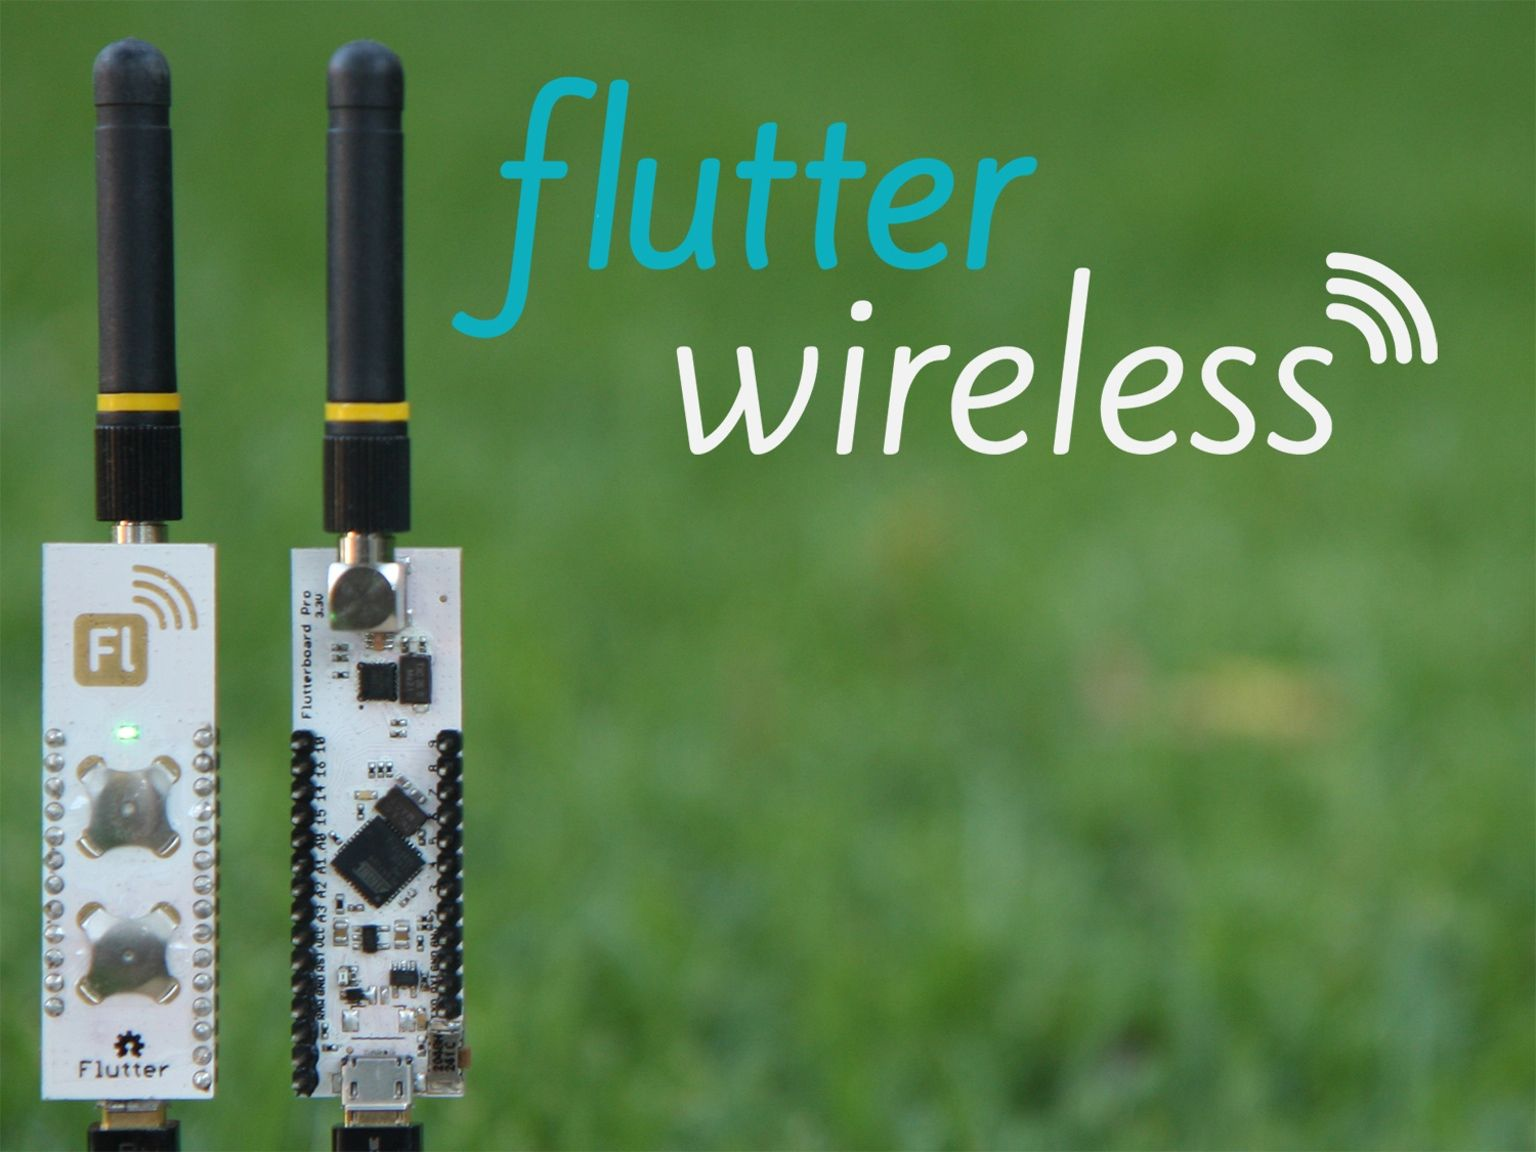 Flutter is an open source ARM-powered wireless Arduino with